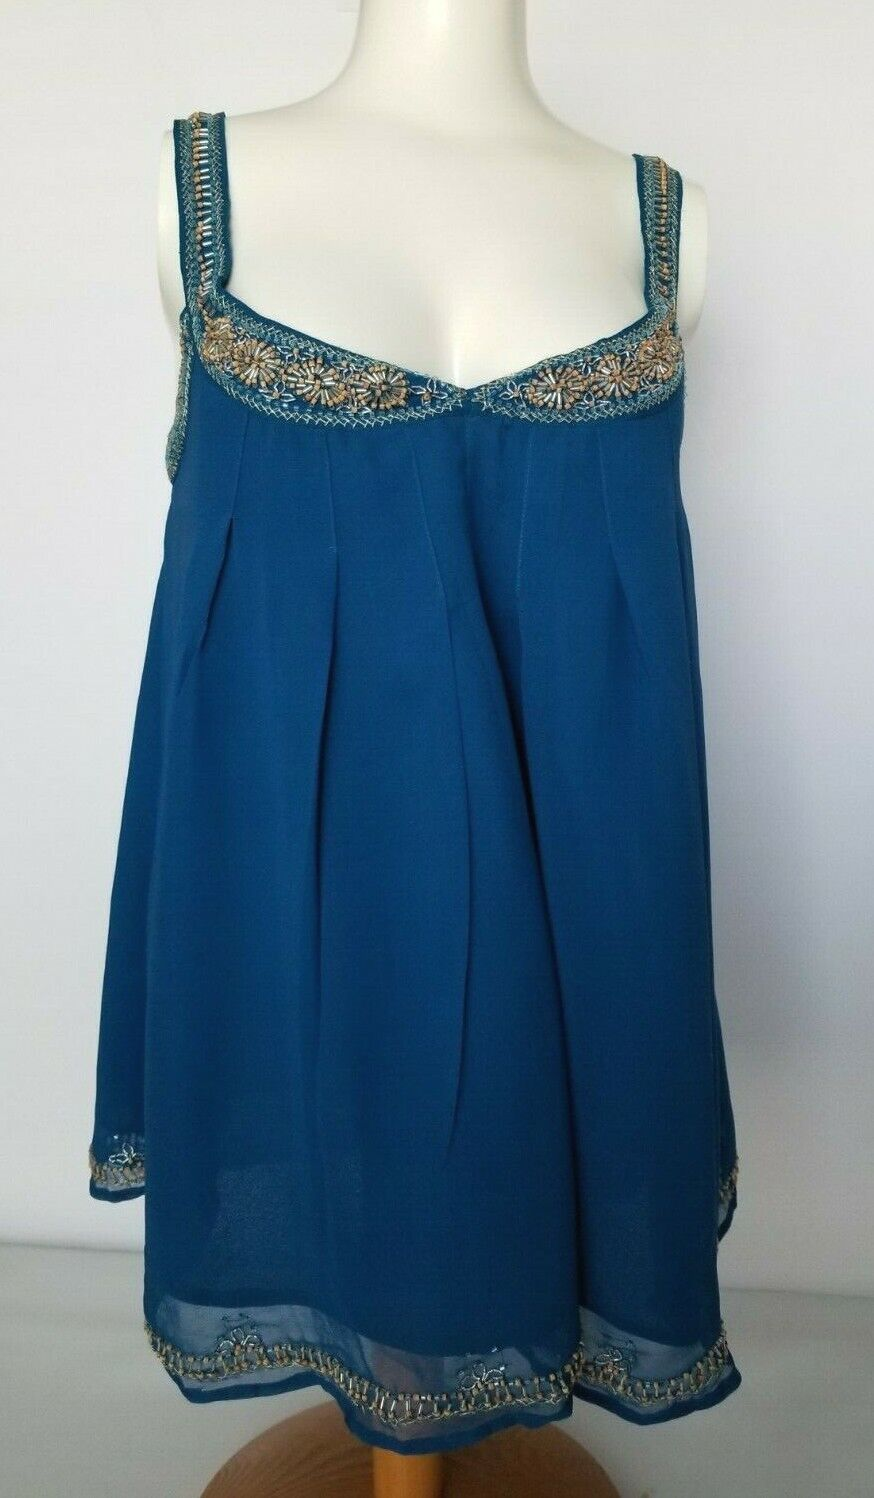 French Connection Camisole Top Blau Beaded Embellished Border Lined Größe 6 NEW